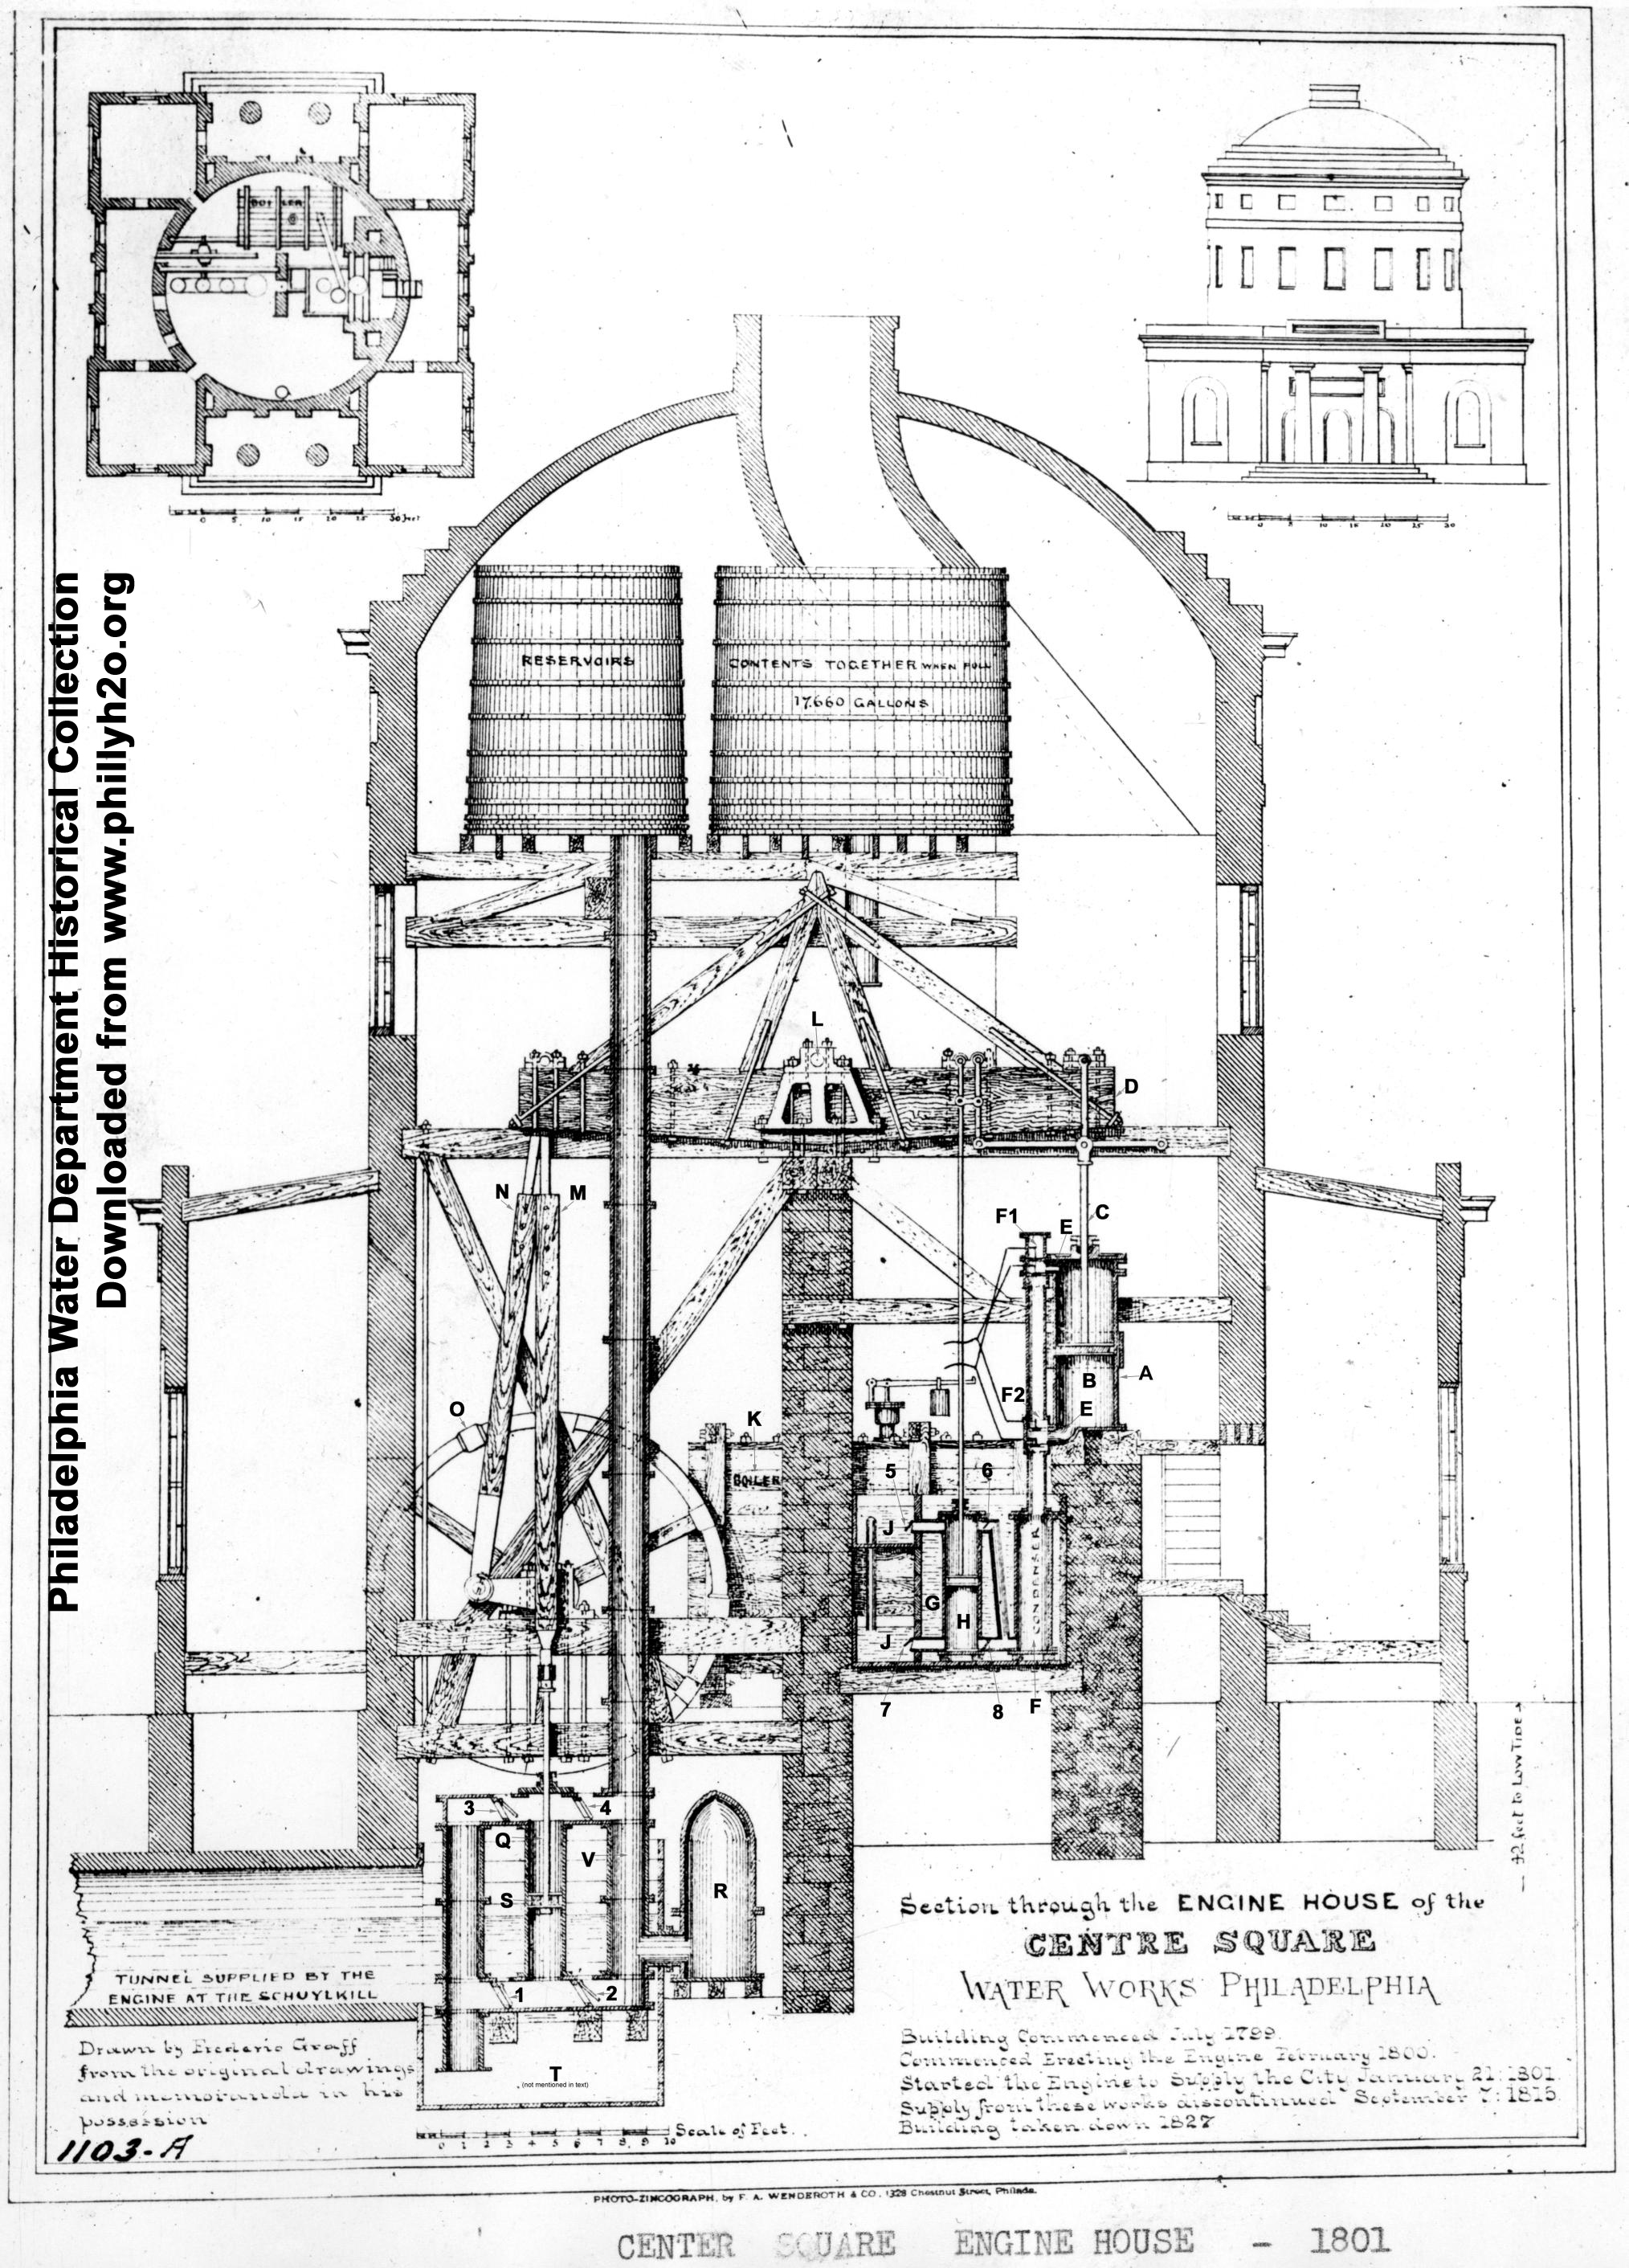 Figure 4: Benjamin Latrobe's Centre Square Water Works in Philadelphia, 1799-1801. A complicated blueprint of the building is titled 'CENTRE SQUARE WATER WORKS PHILADELPHIA.'